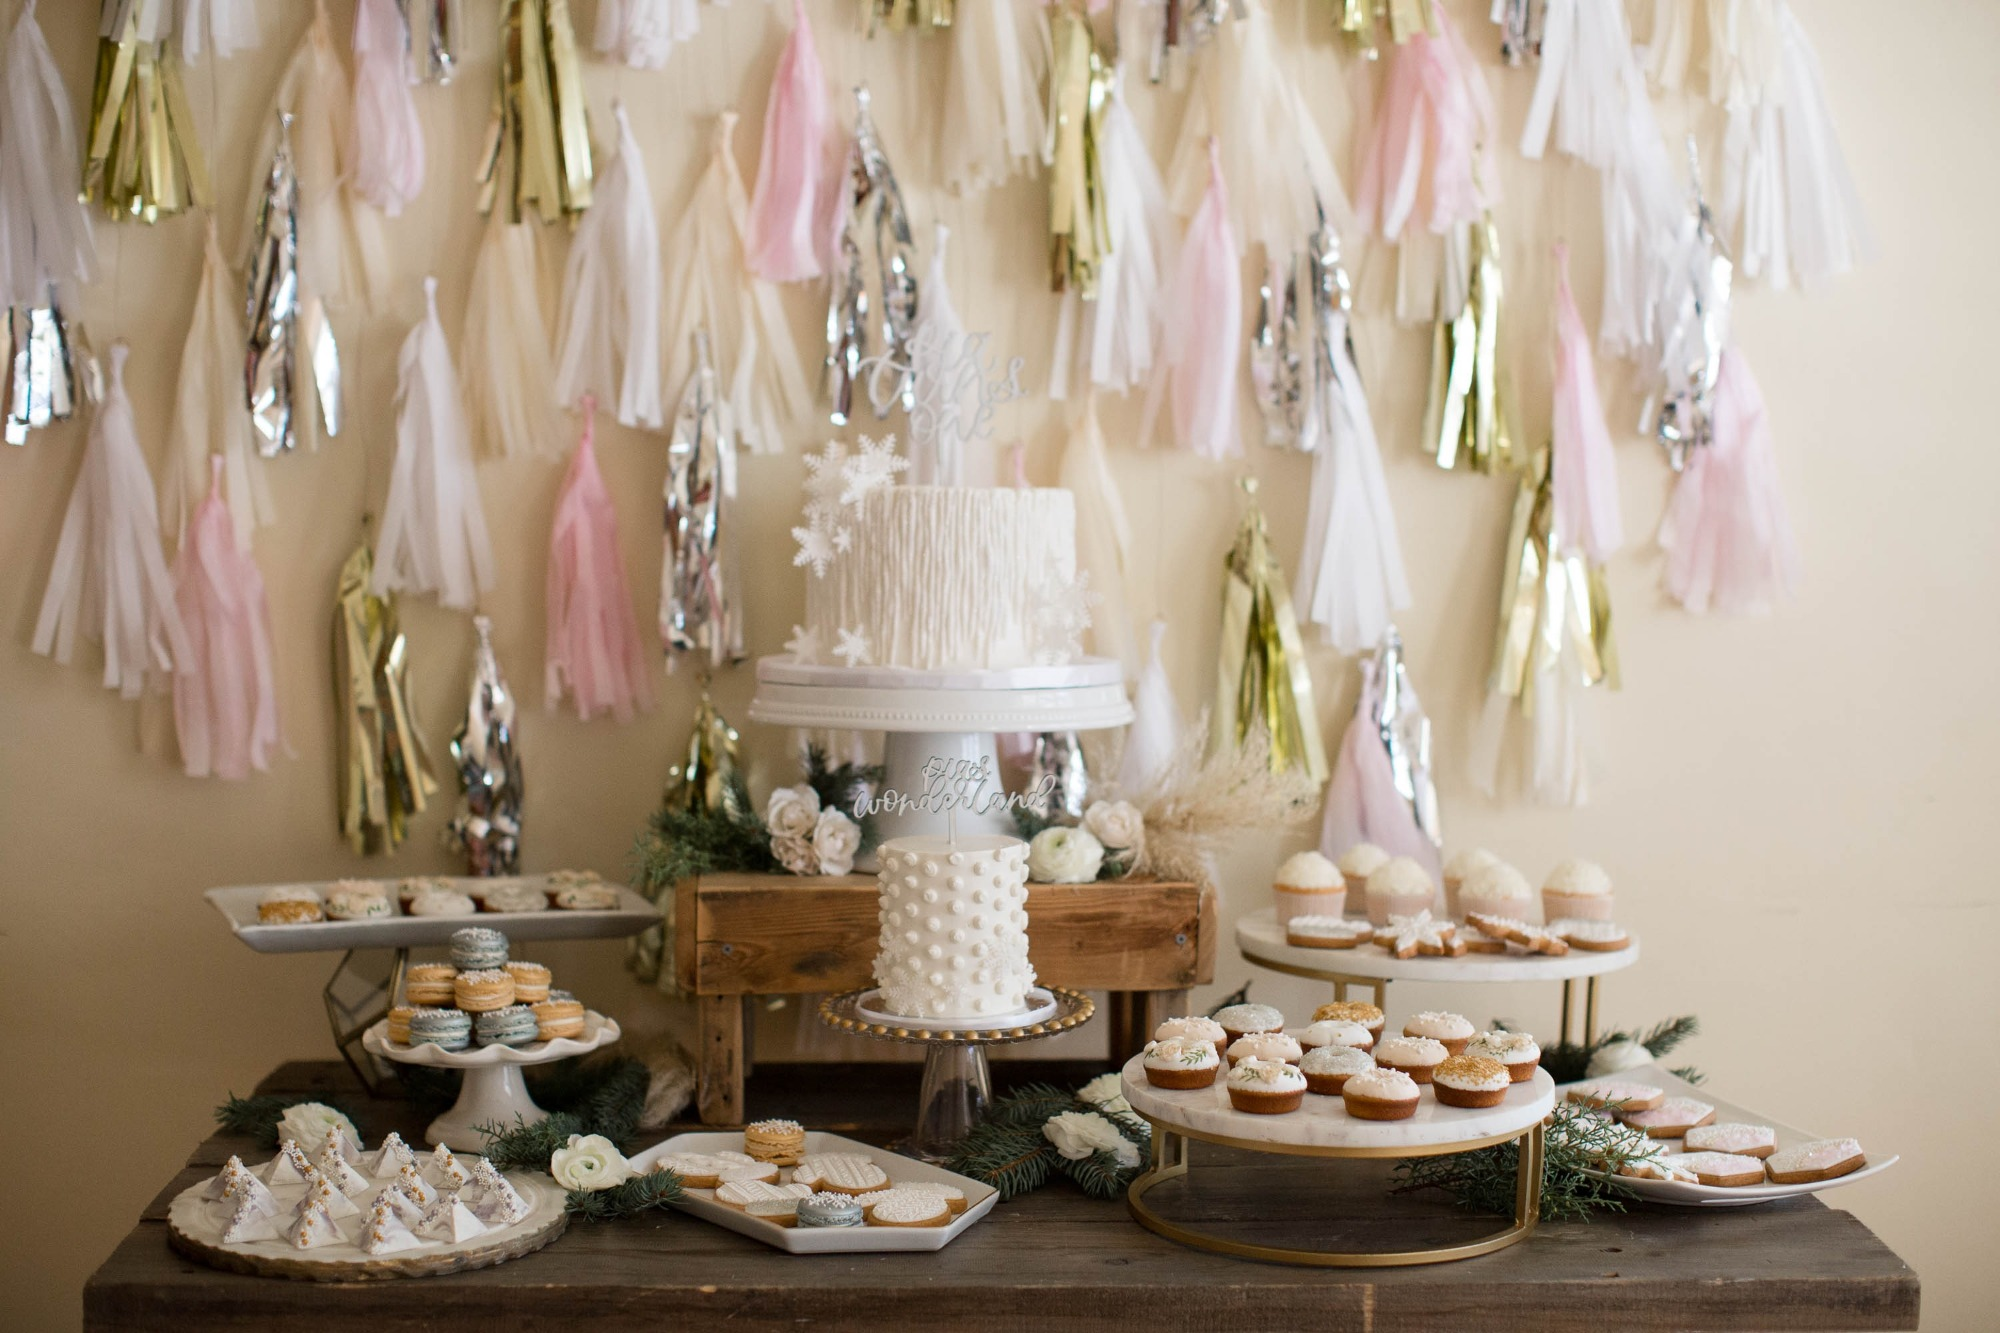 Dessert Table from Snowy Birthday Soiree Styled by Deets & Things   Black Twine